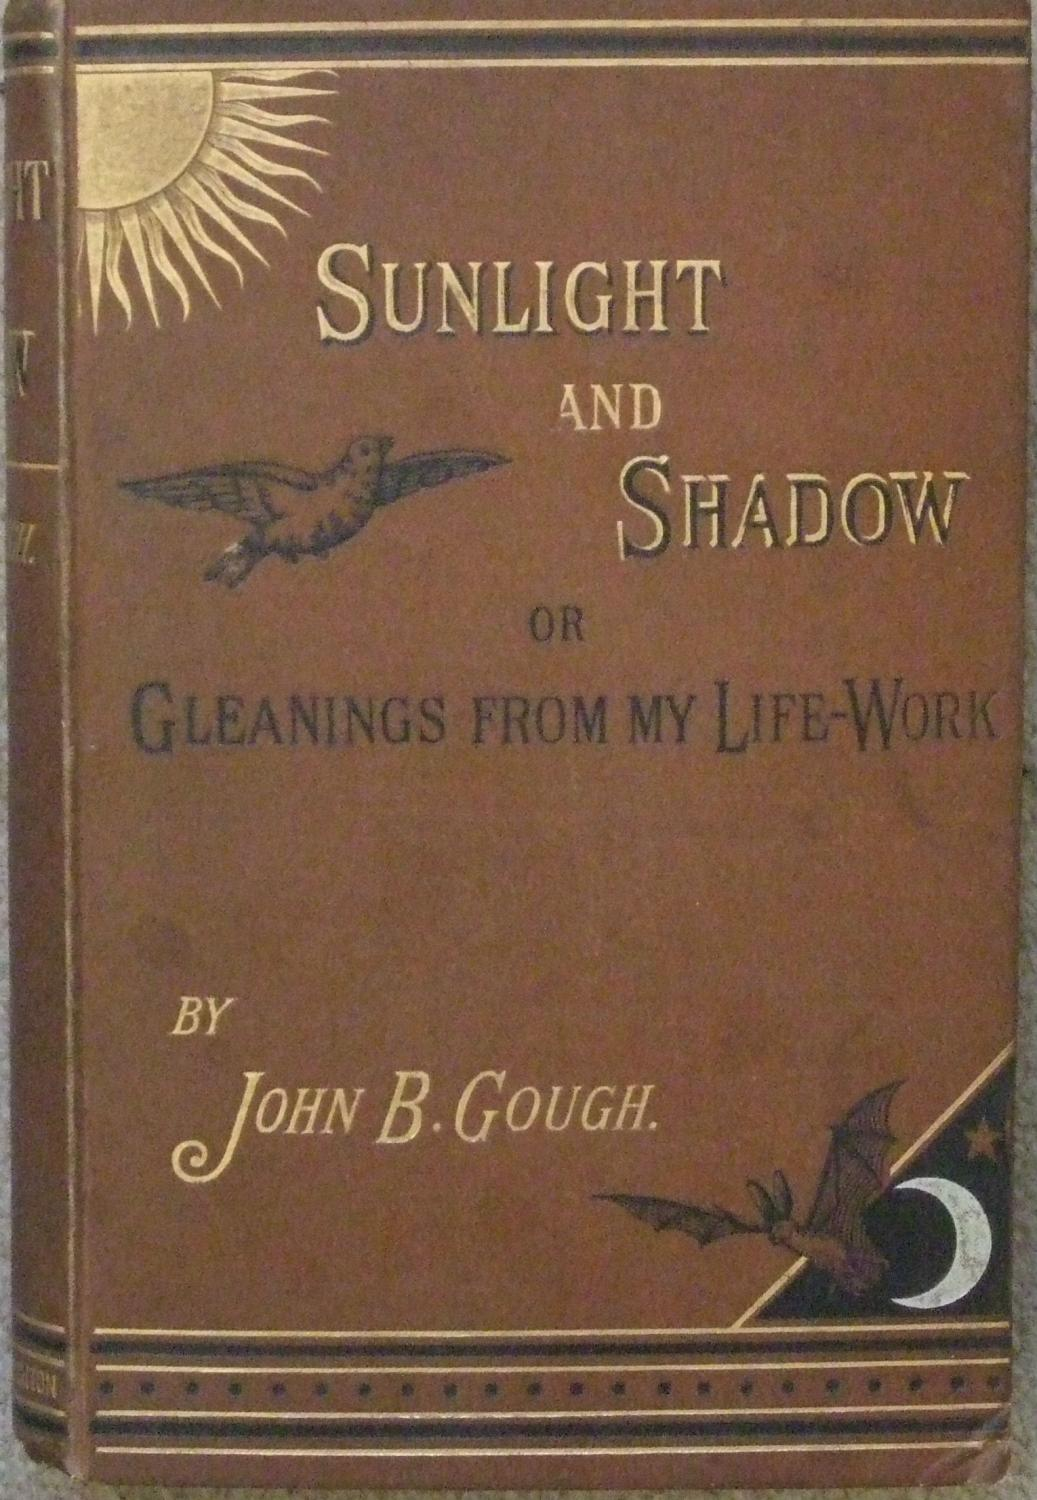 Sunlight And Shadow Or Gleanings From My Life-Work John B. Gough